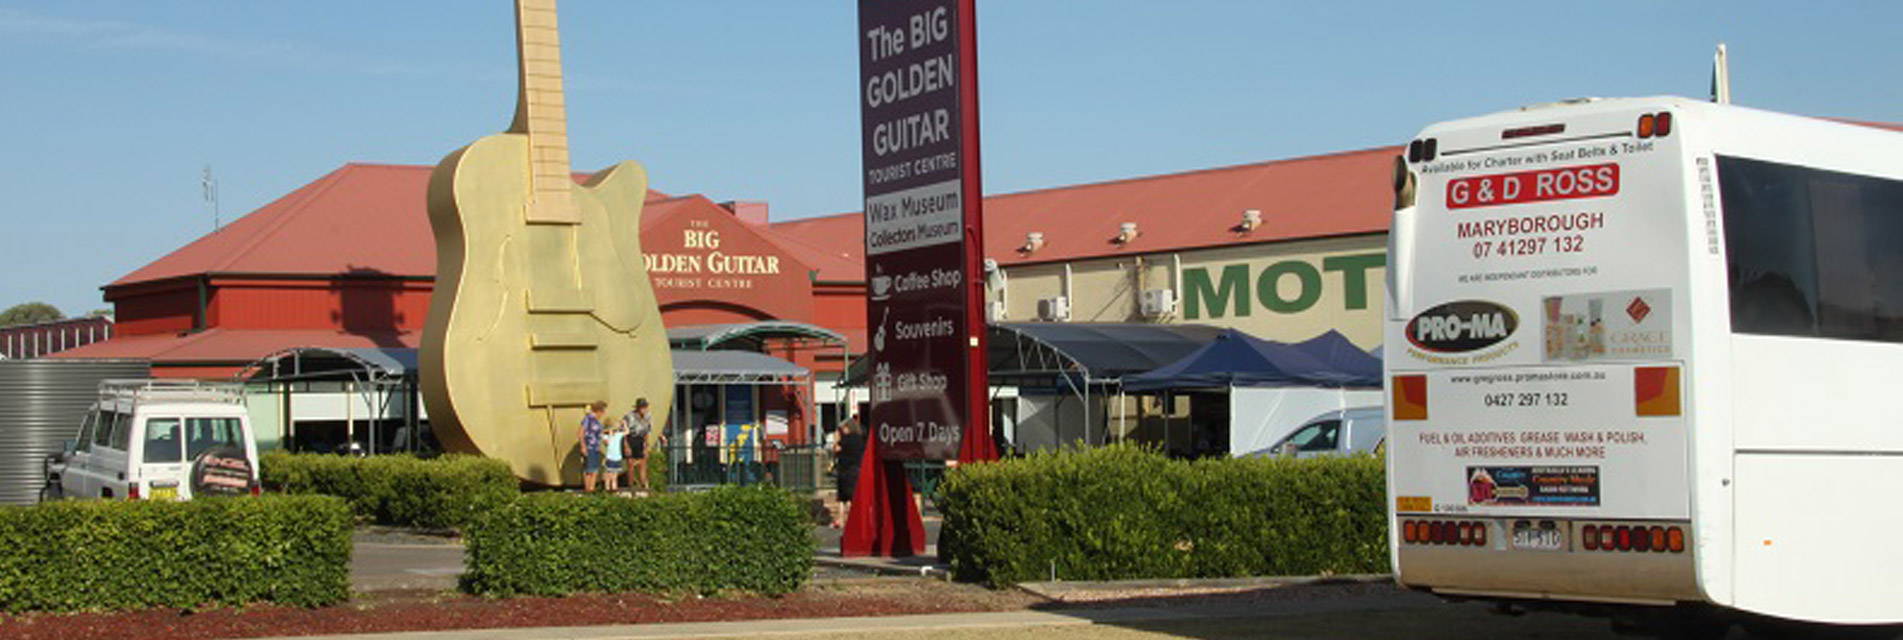 G&D Ross Tour at Big Golden Guitar — Tours in Maryborough QLD